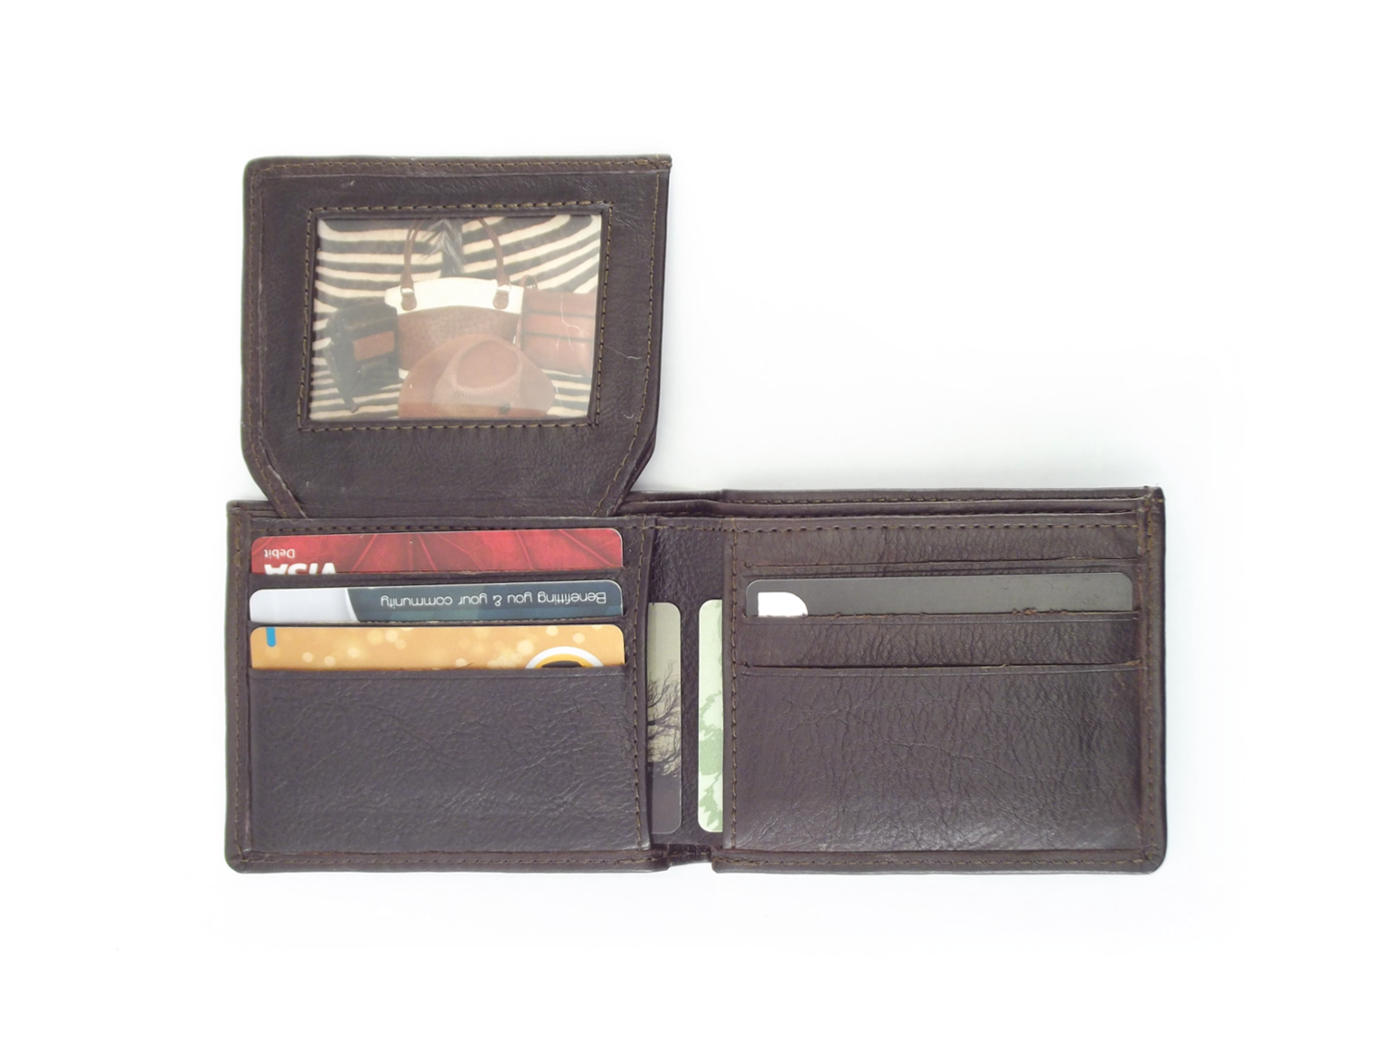 Mens leather business card wallet der lederhandler wallet 6 cards hpmw22ntku reheart